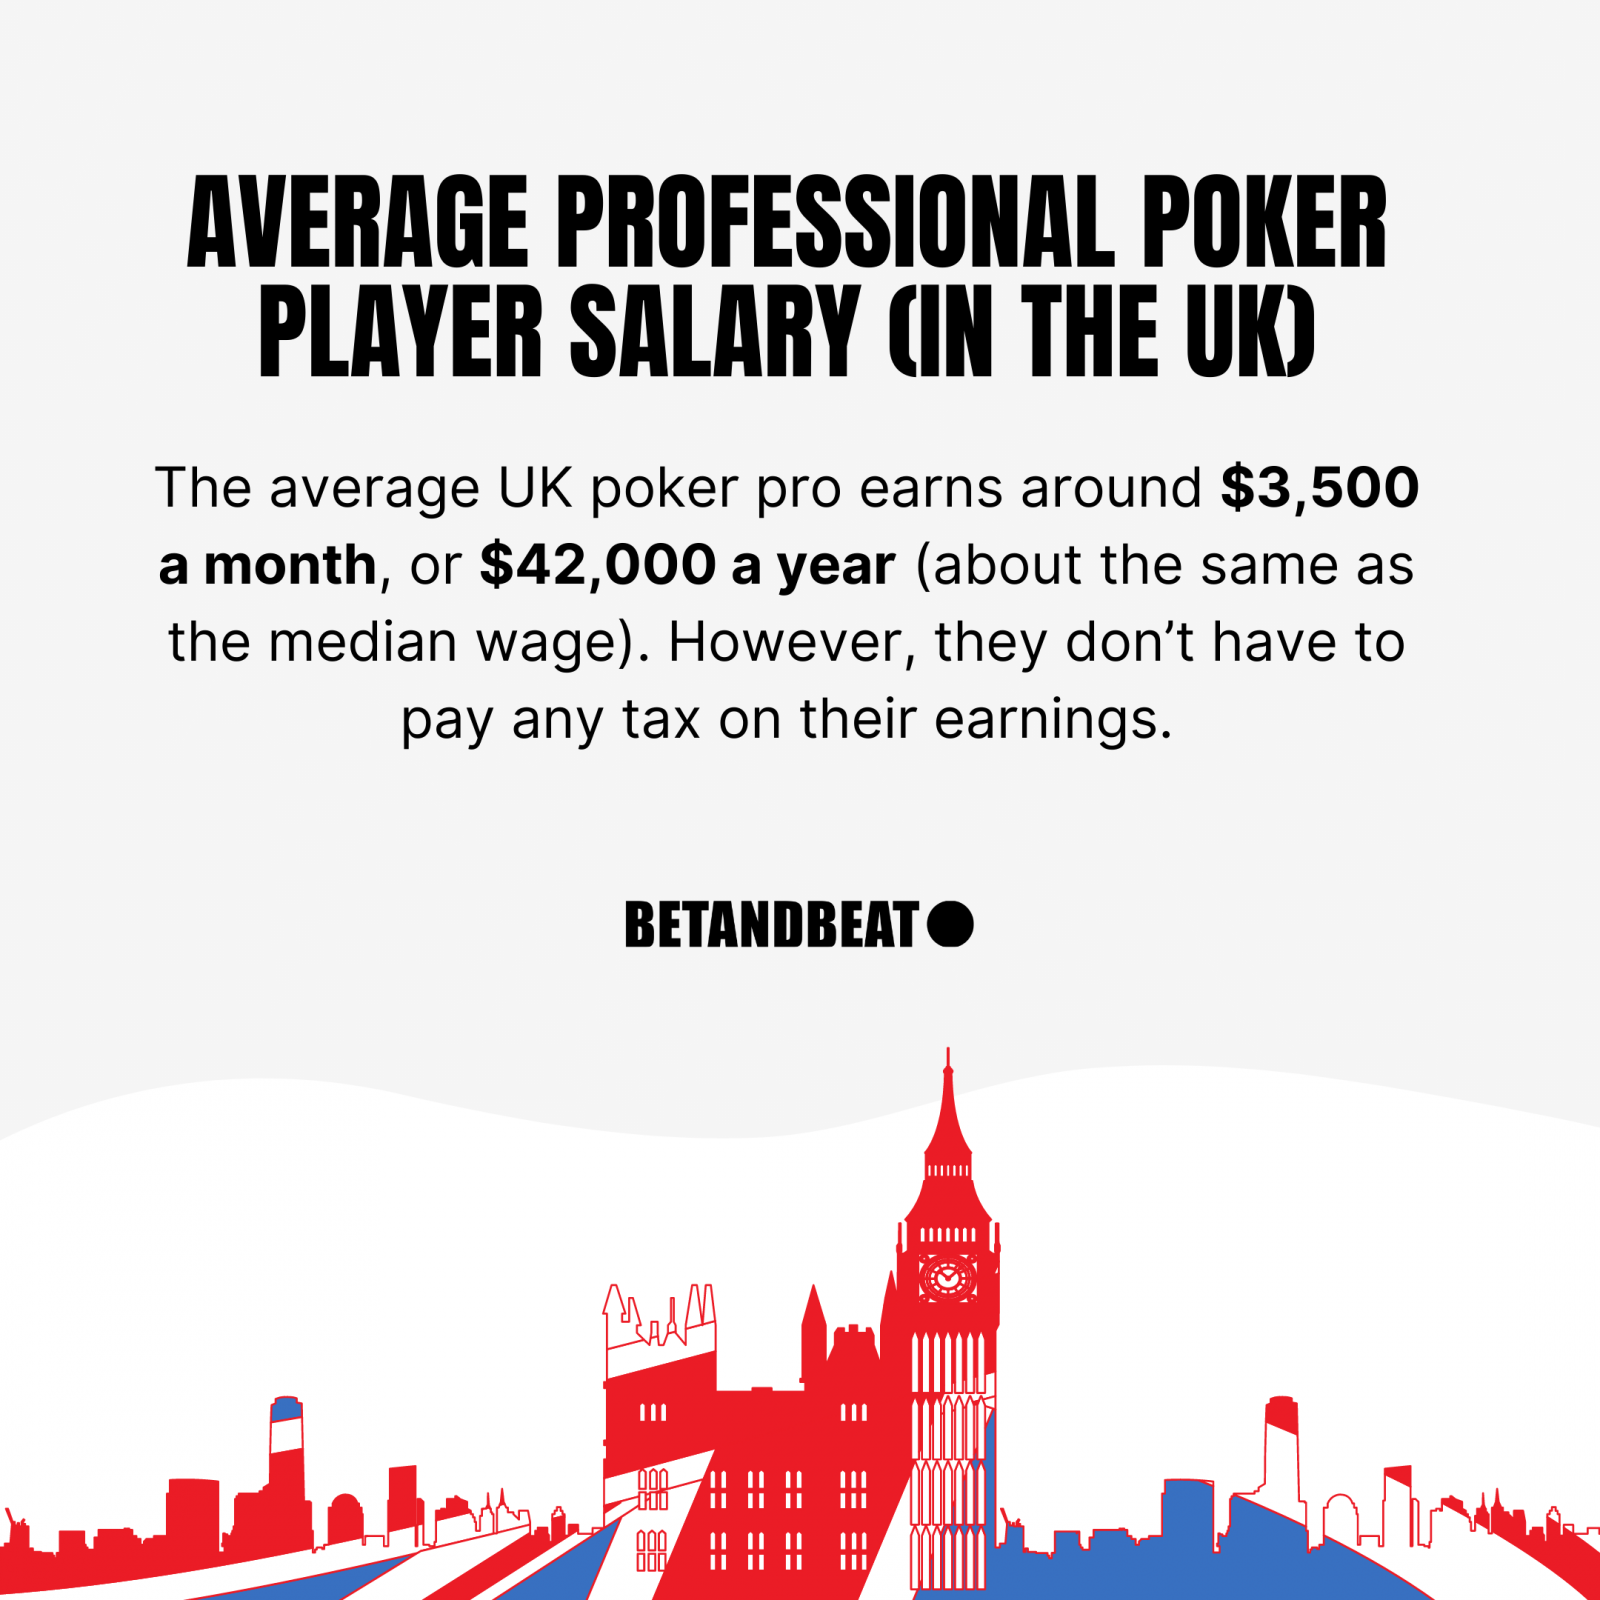 Average pro poker player salary in the UK.